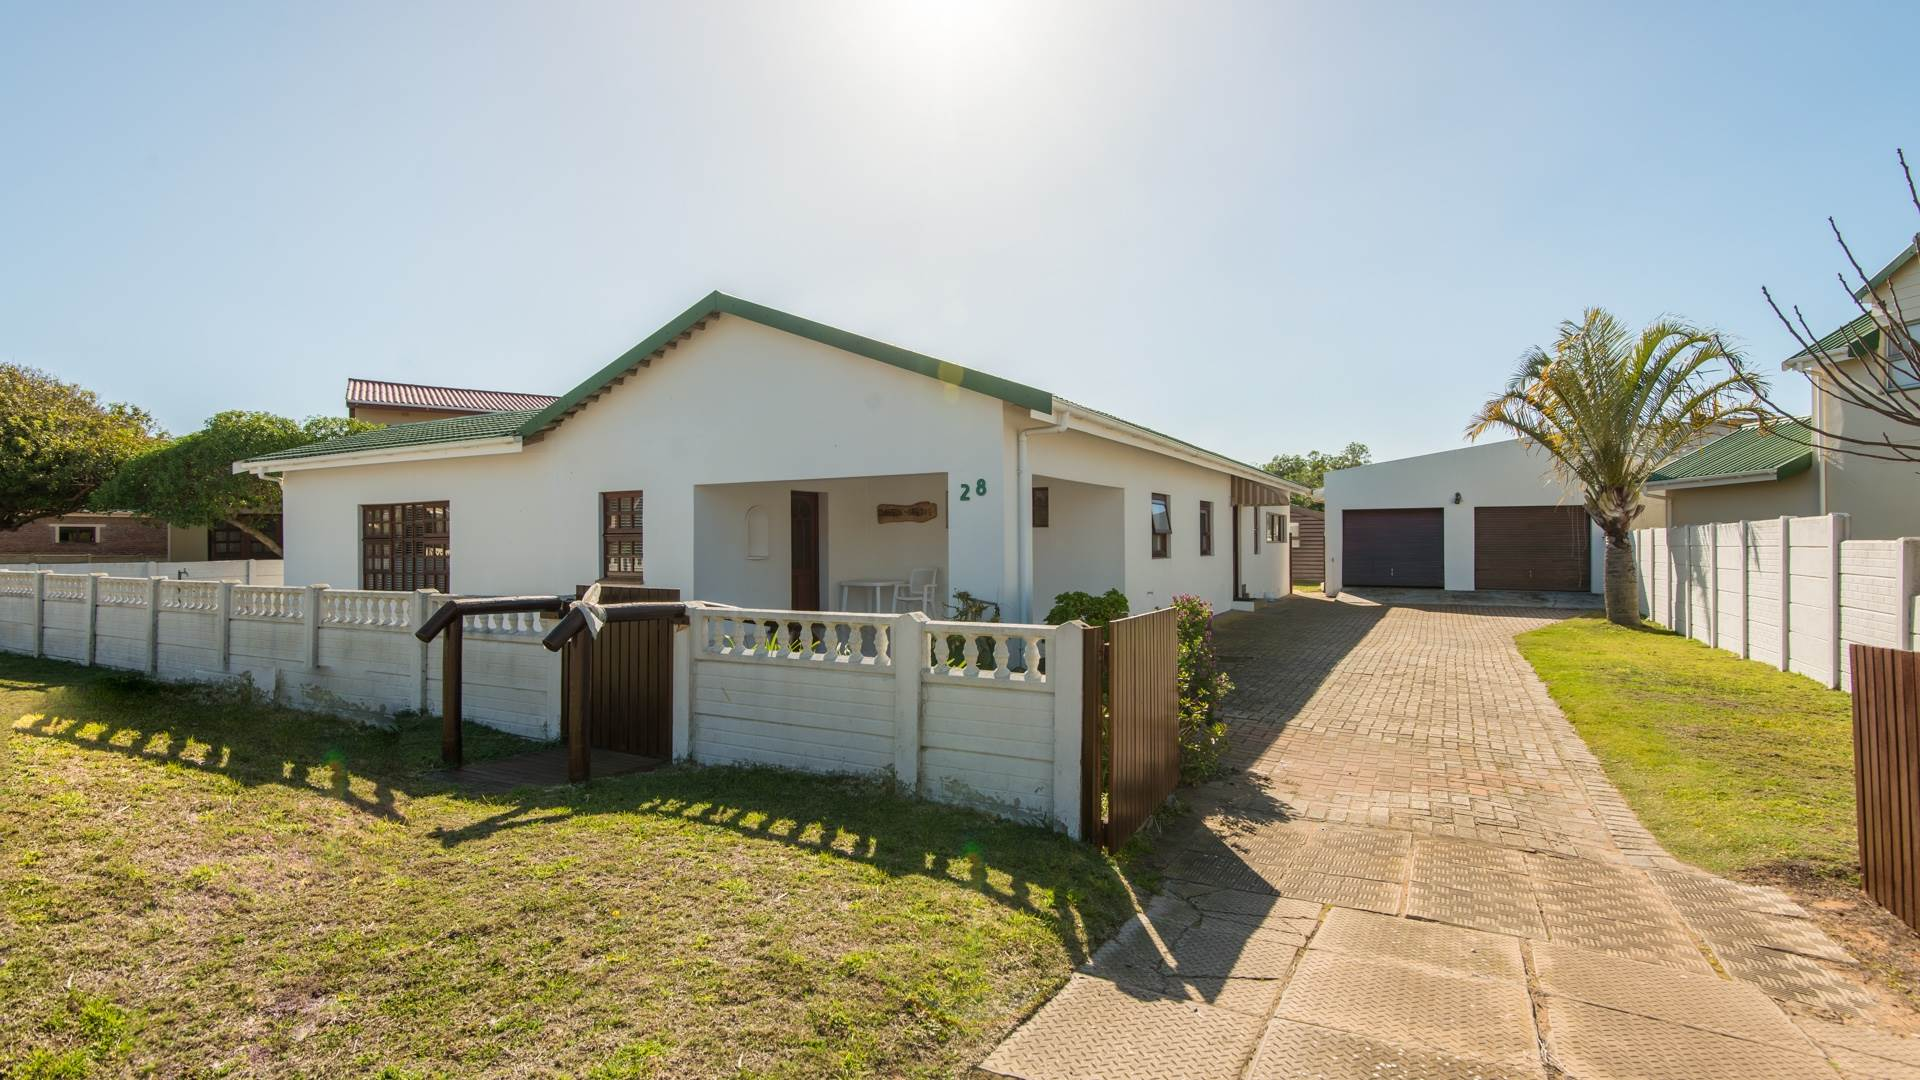 3 BedroomHouse For Sale In Still Bay West